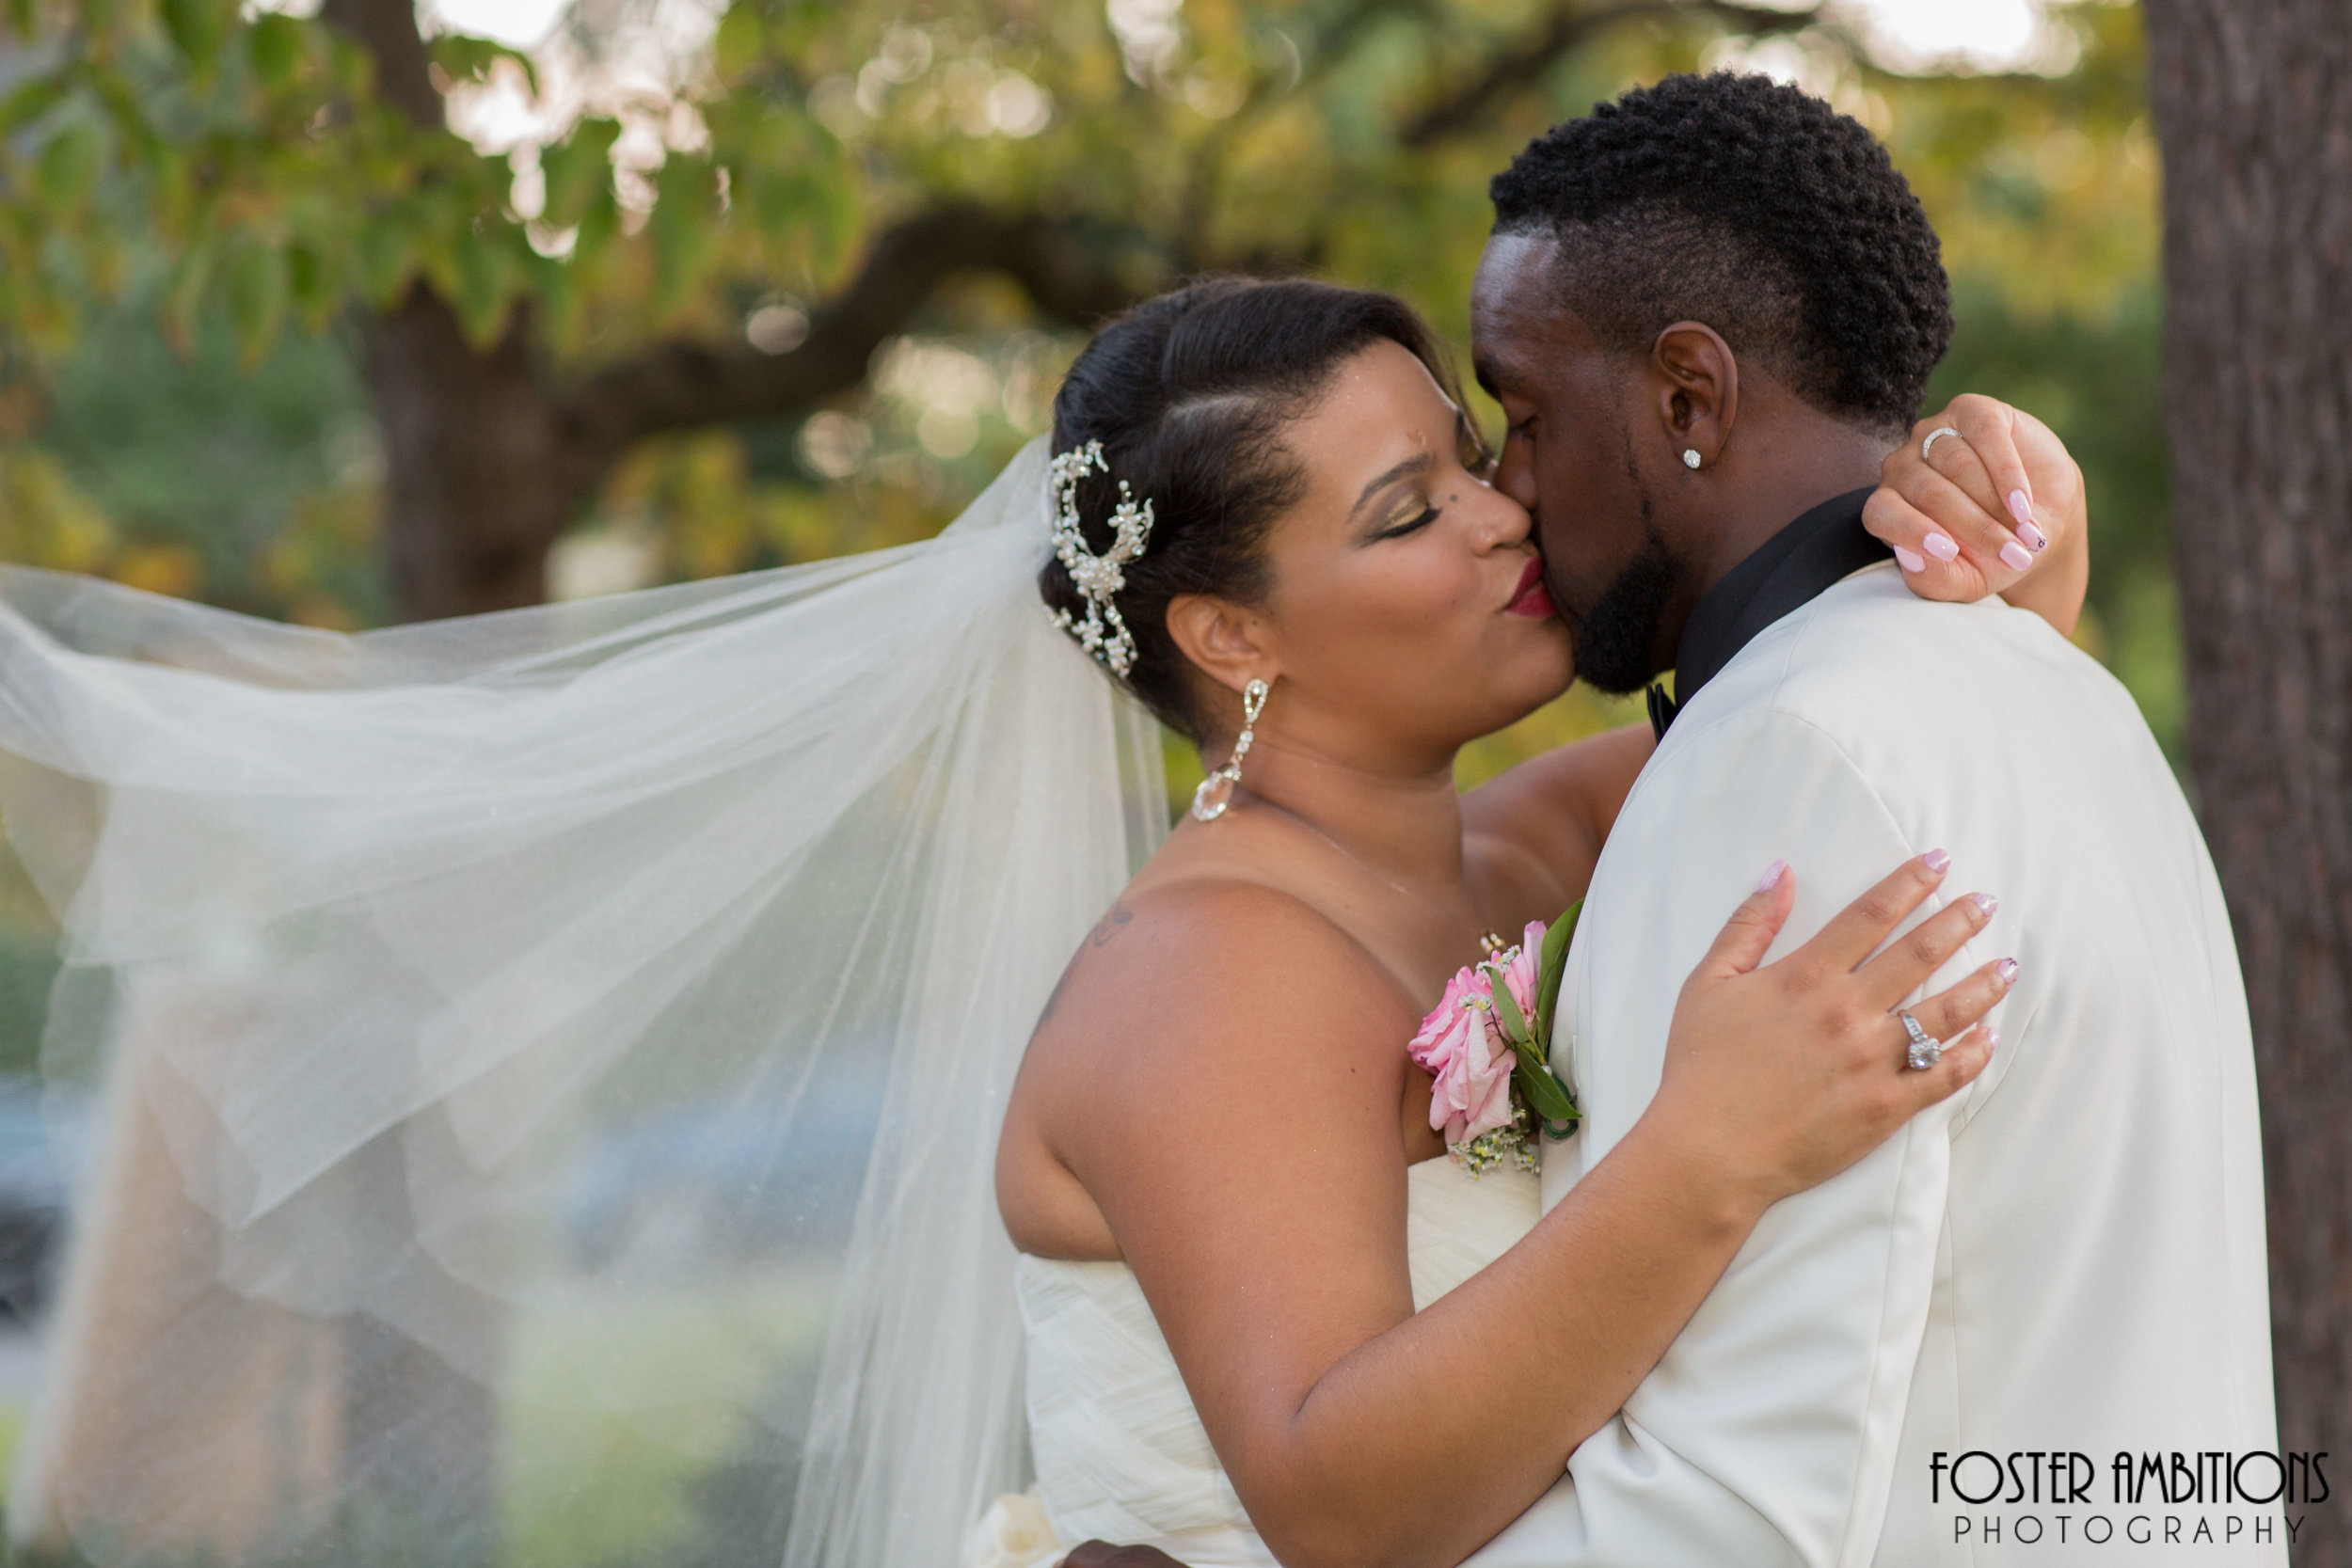 LEYDA & RASHID - GLEN RIDGE, NJ